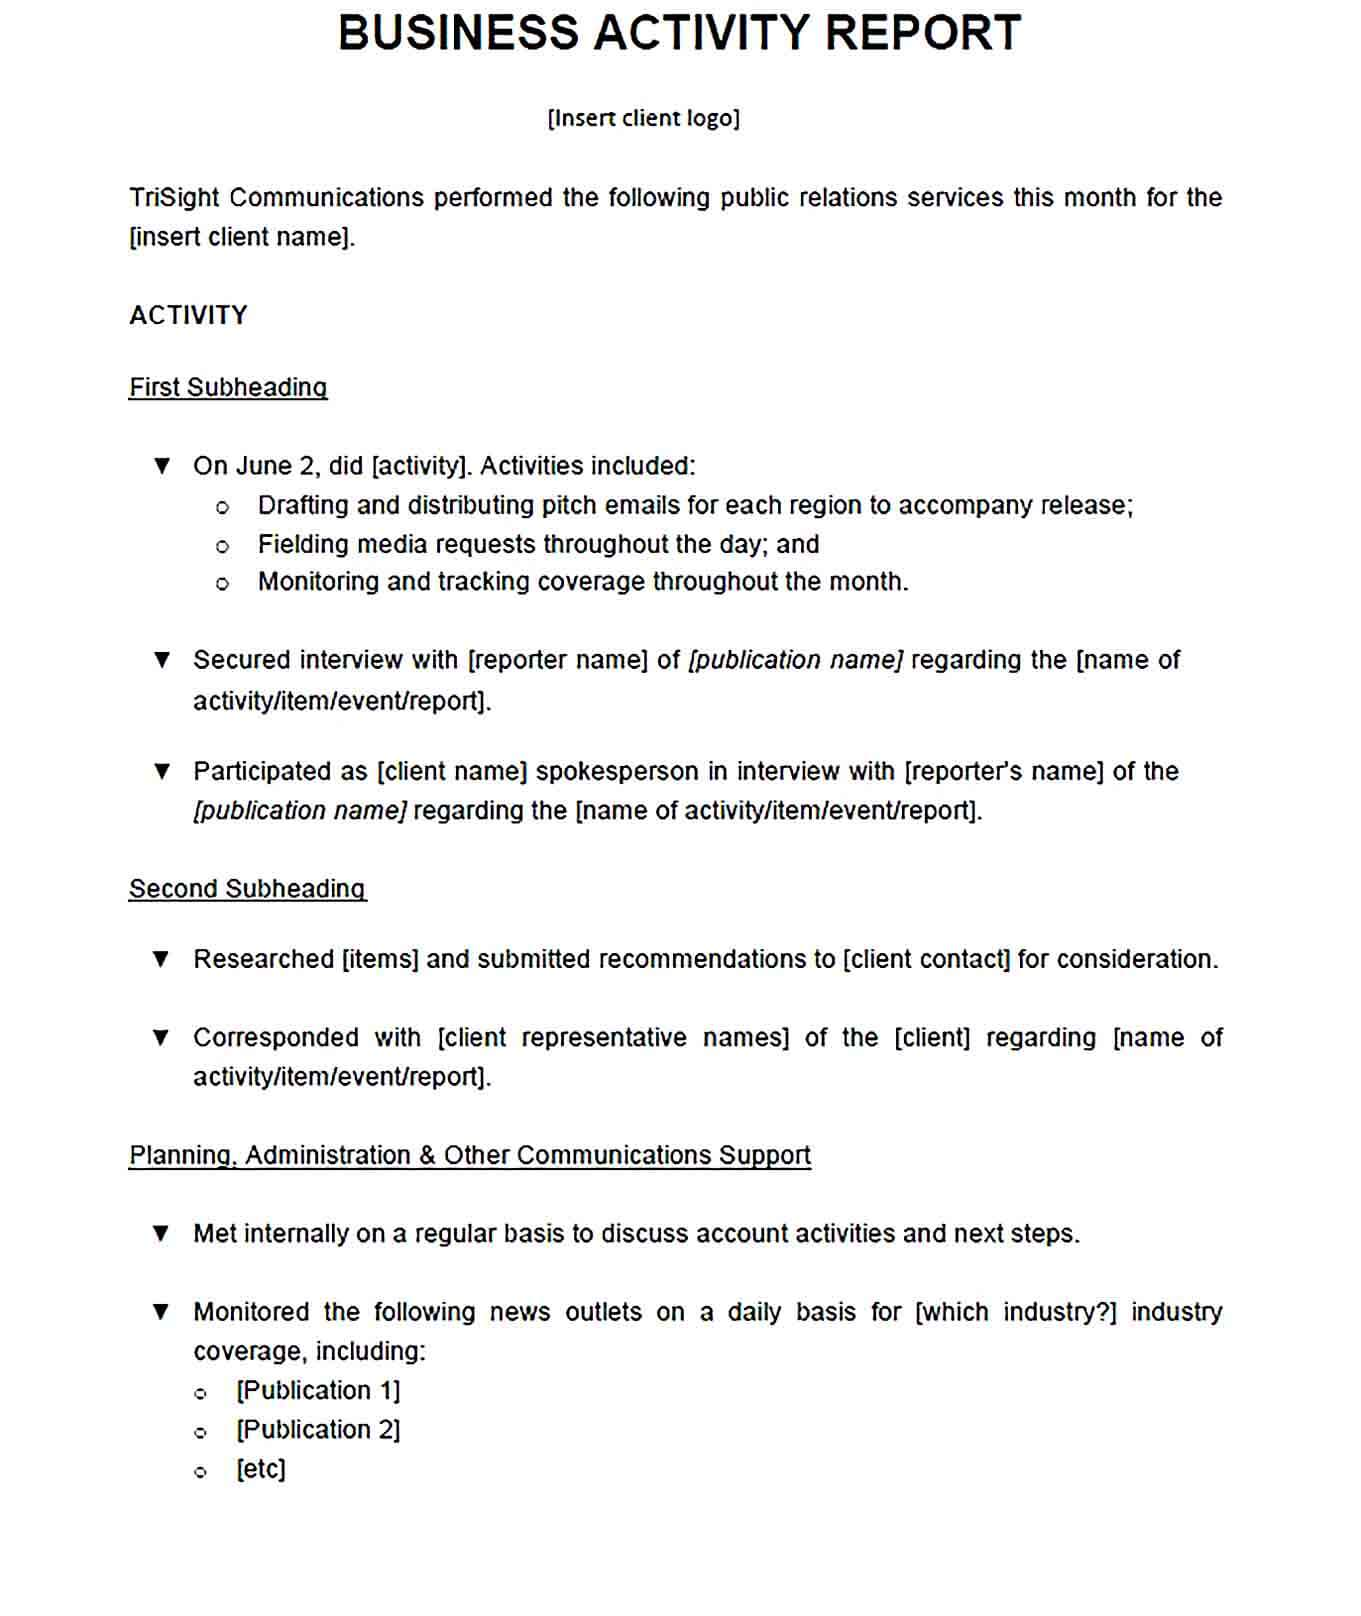 Sample Business Activity Report Format